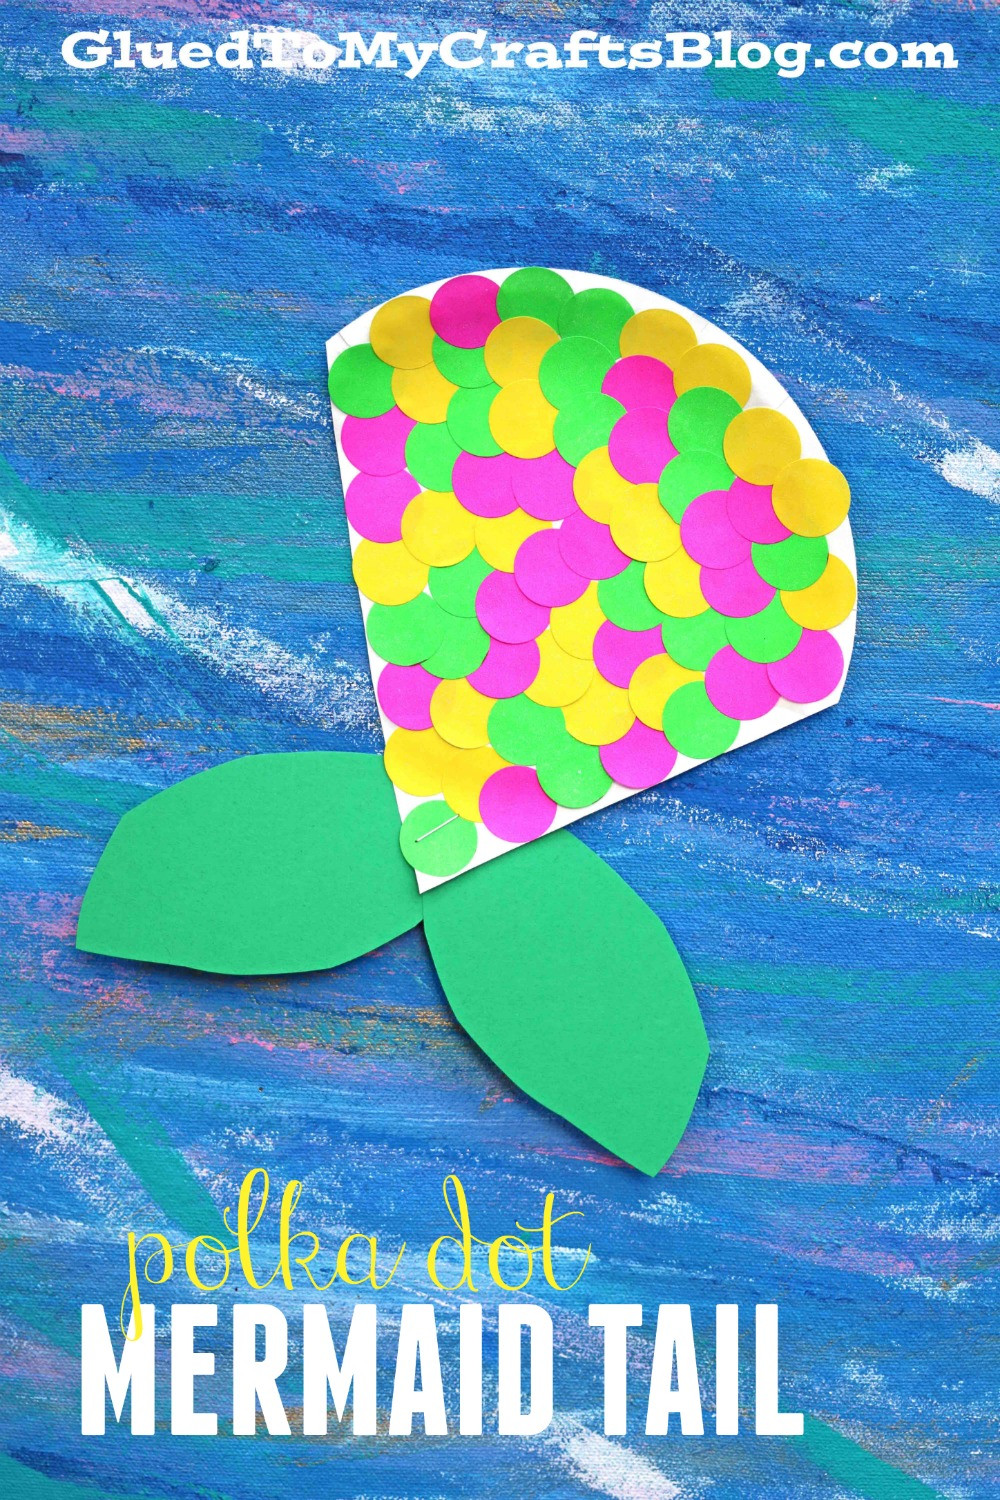 Arts And Crafts For Little Kids  Polka Dot Mermaid Tail Kid Craft Glued To My Crafts